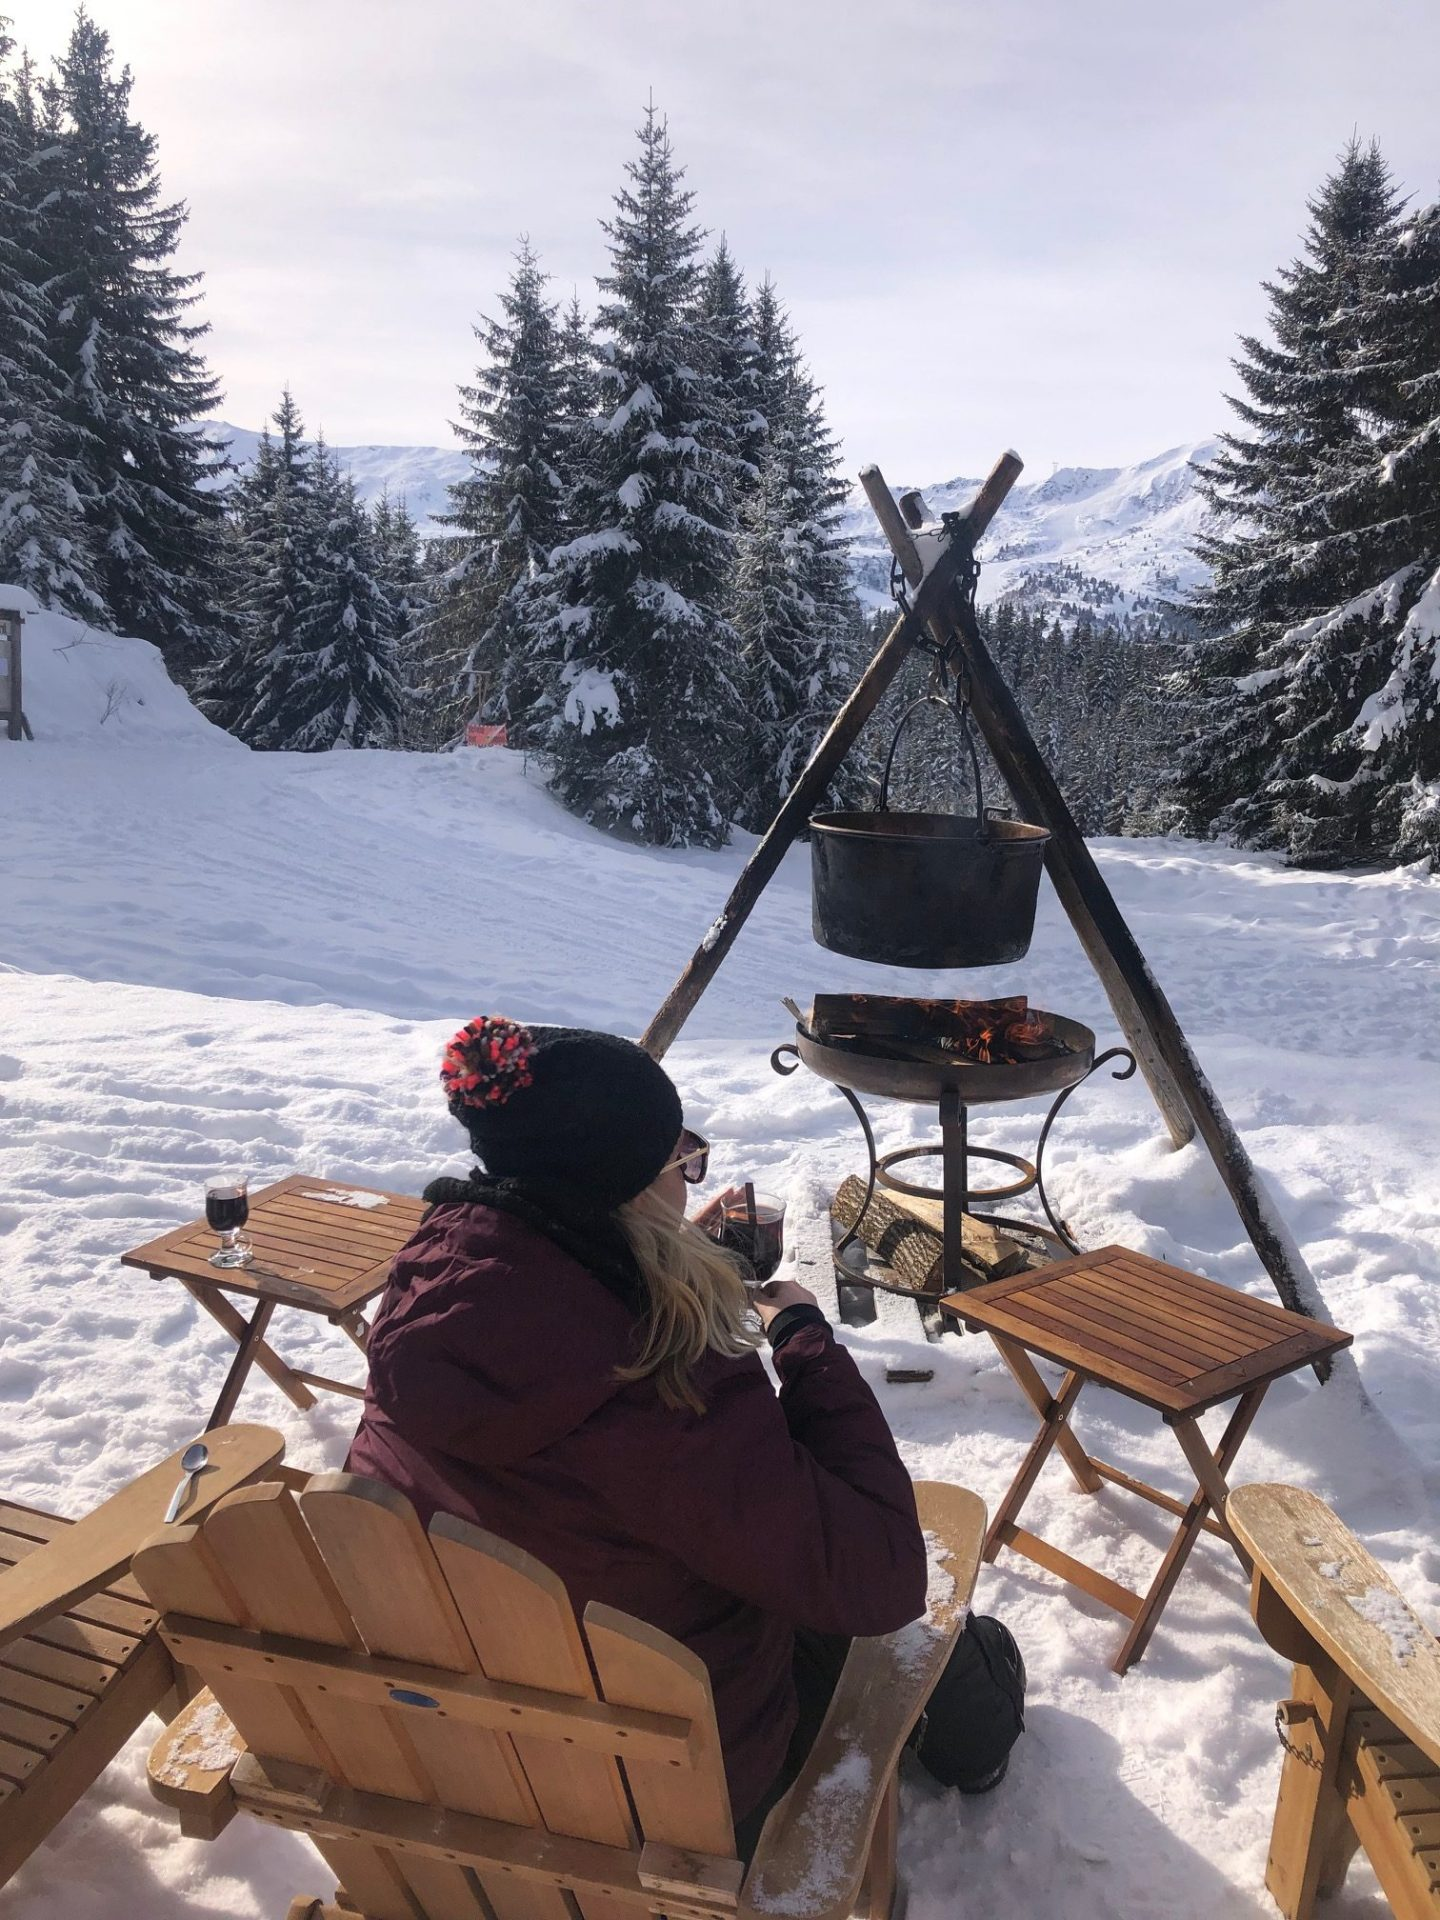 Wintersportvakantie in Brides les Bains met culinaire tips Foodblog Foodinista